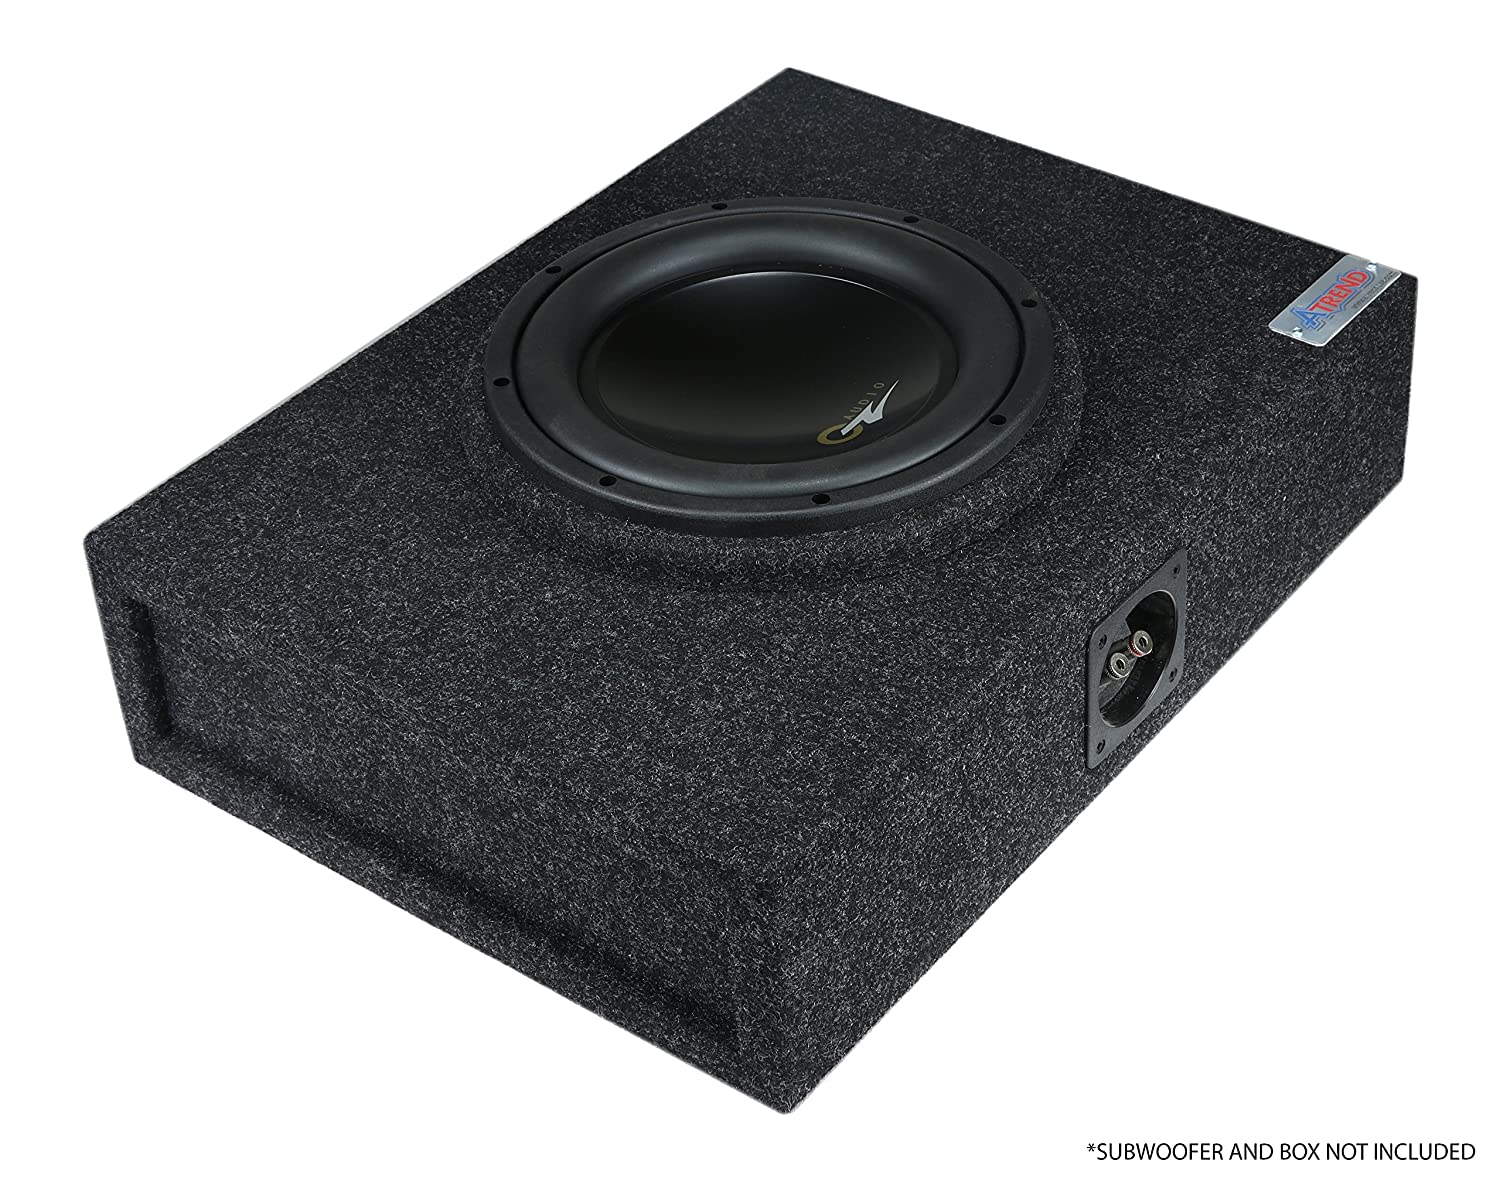 Atrend Universal MDF Constructed Spacer for 10 Inch Sub Boxes Adds 3//4 to Decrease Woofer Depth S10